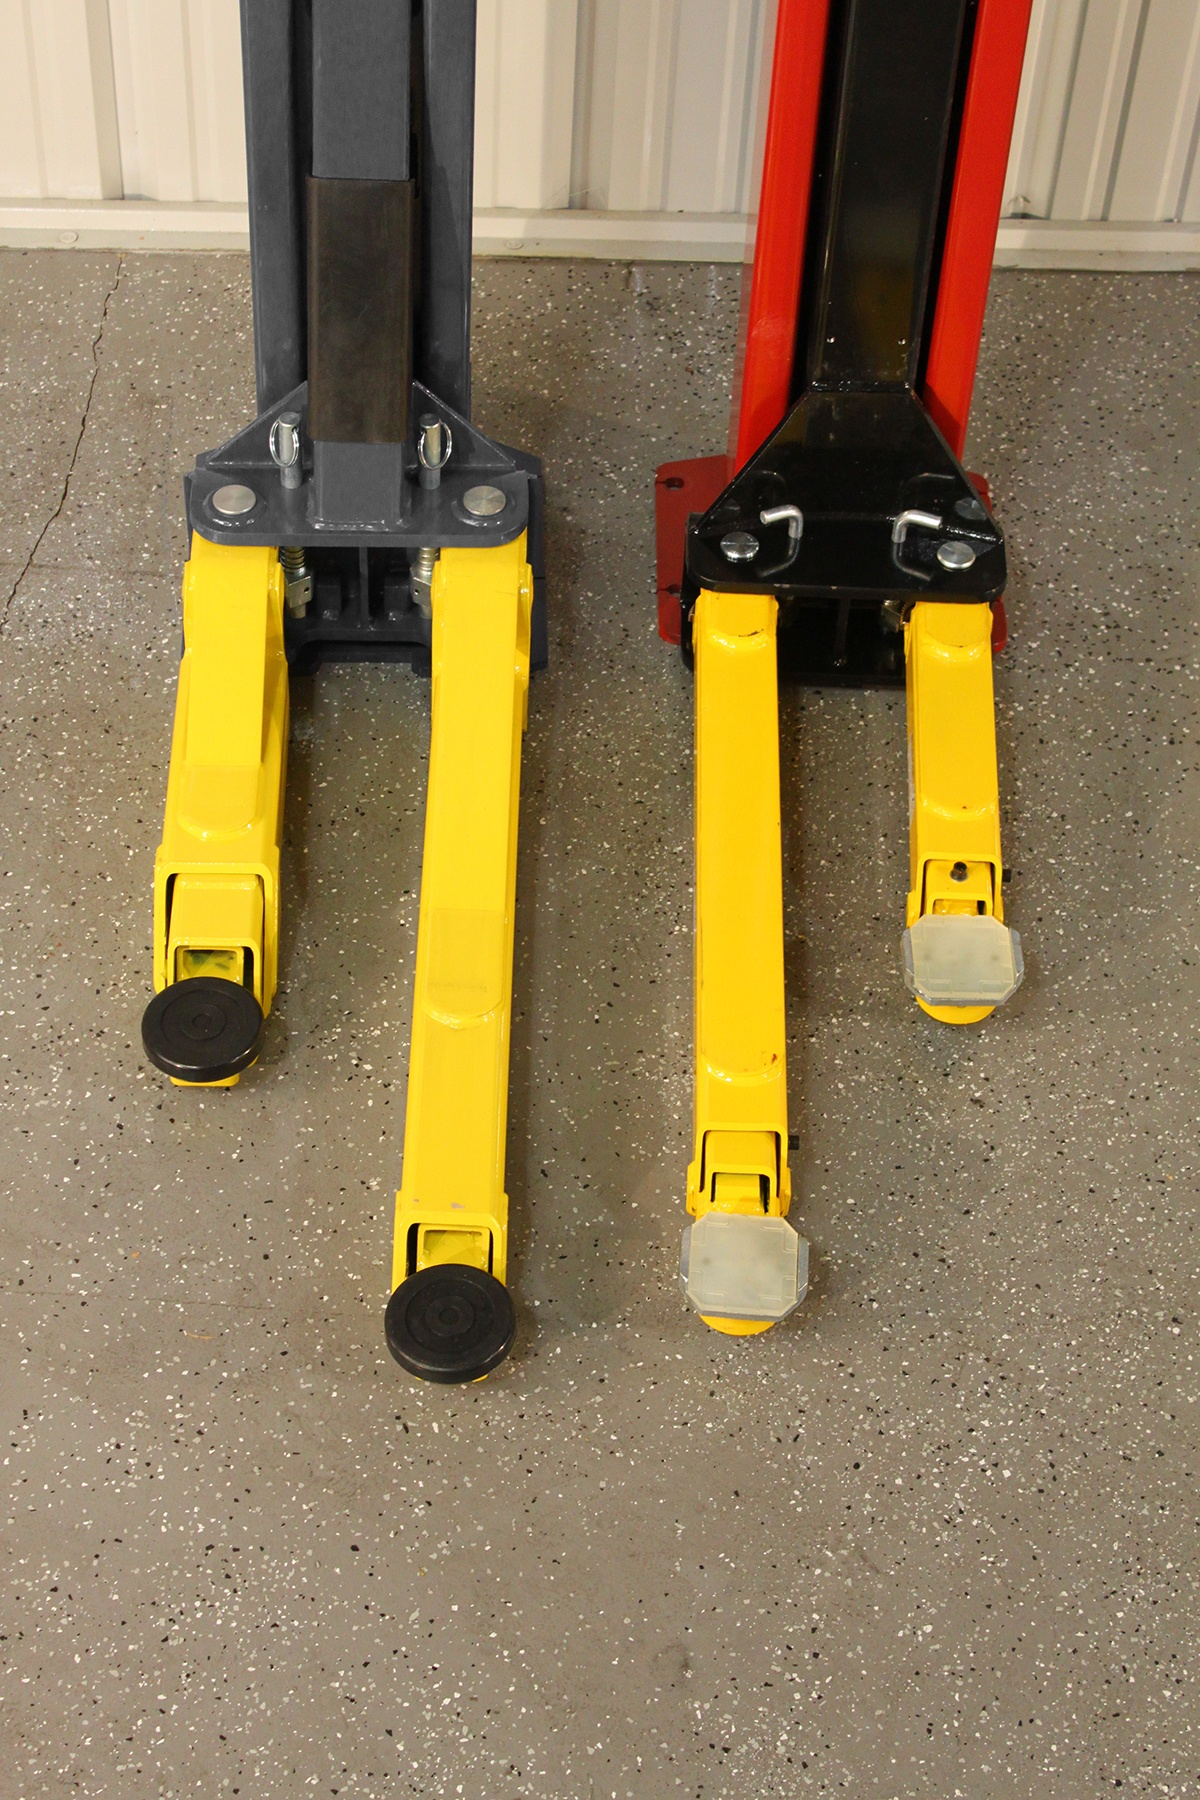 BendPak Two-Post lift Compared to Challenger Lift Arms Retracted